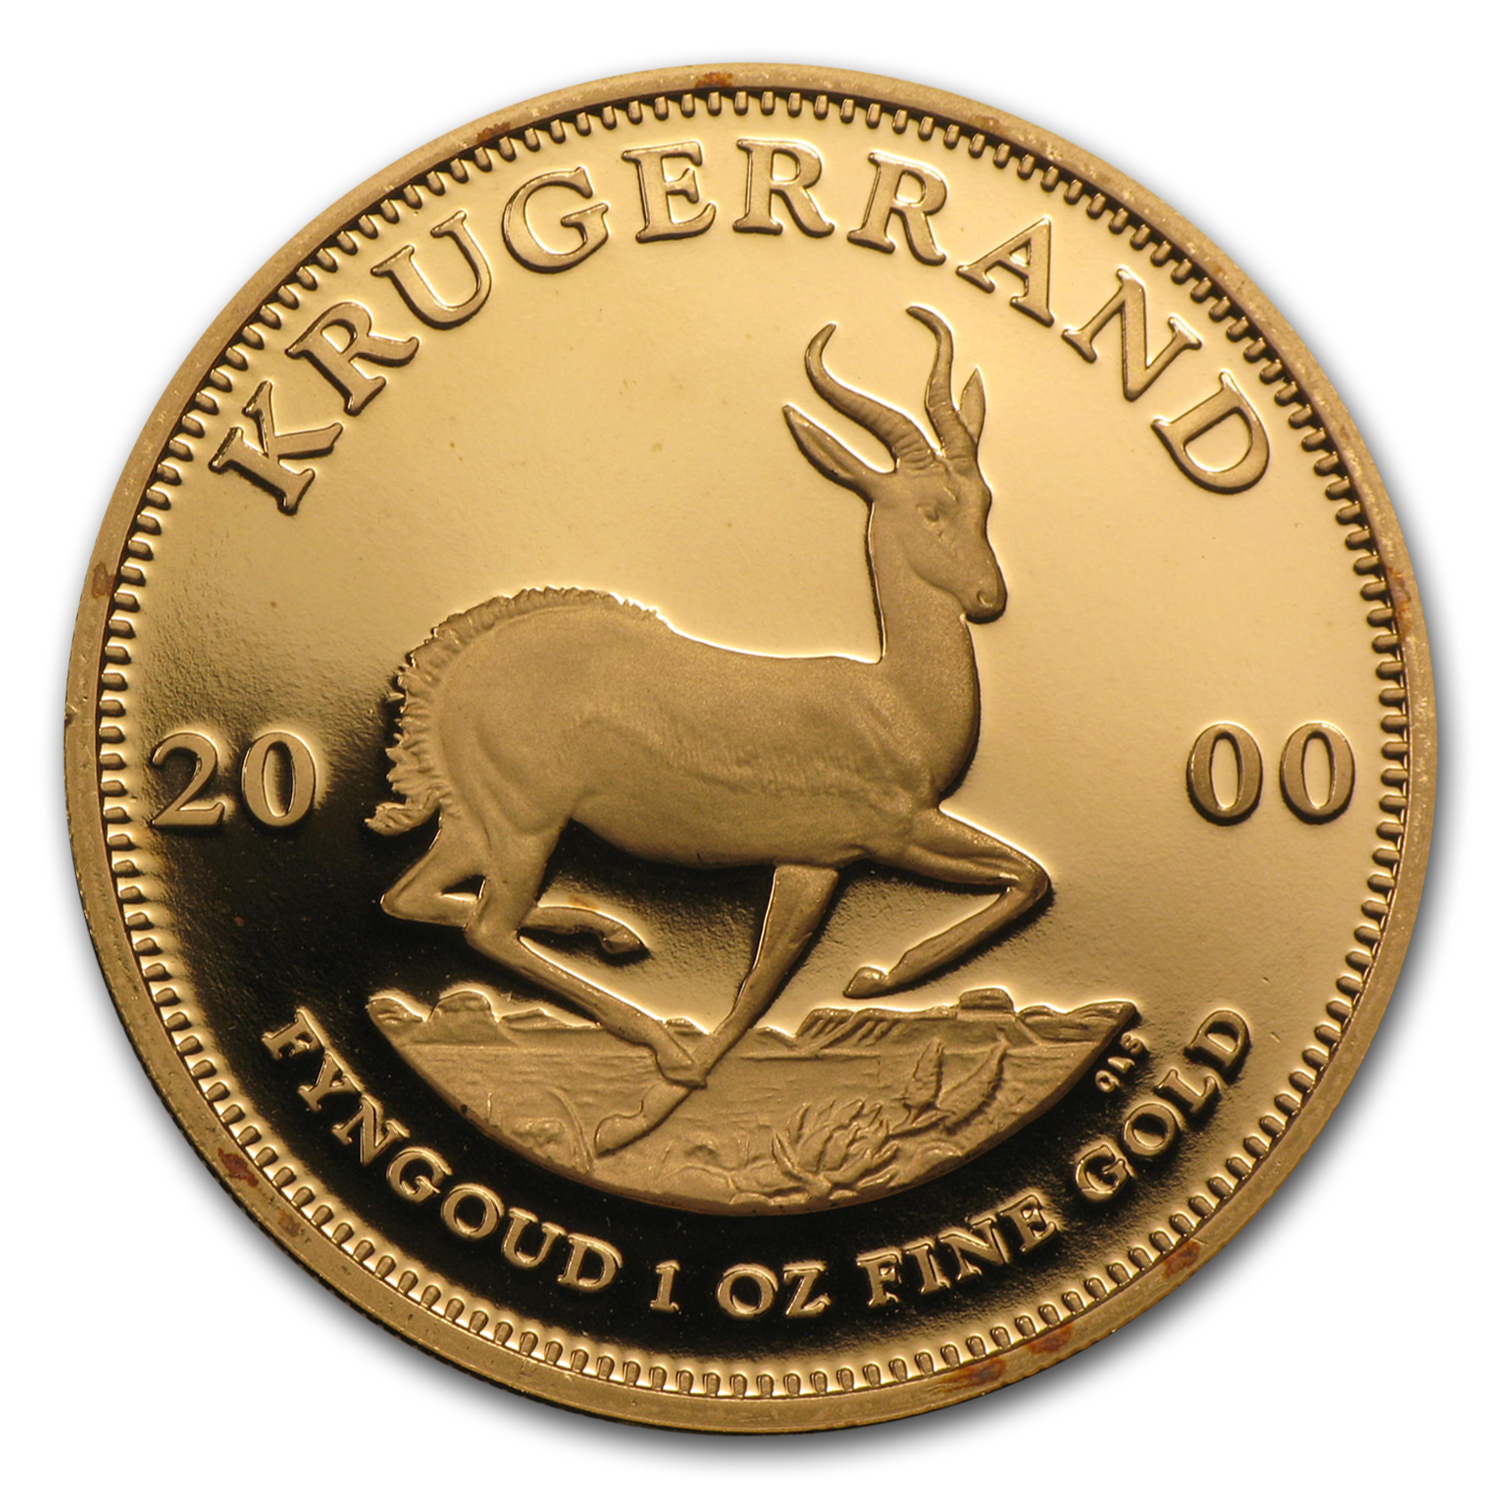 2000 South Africa 1 oz Proof Gold Krugerrand